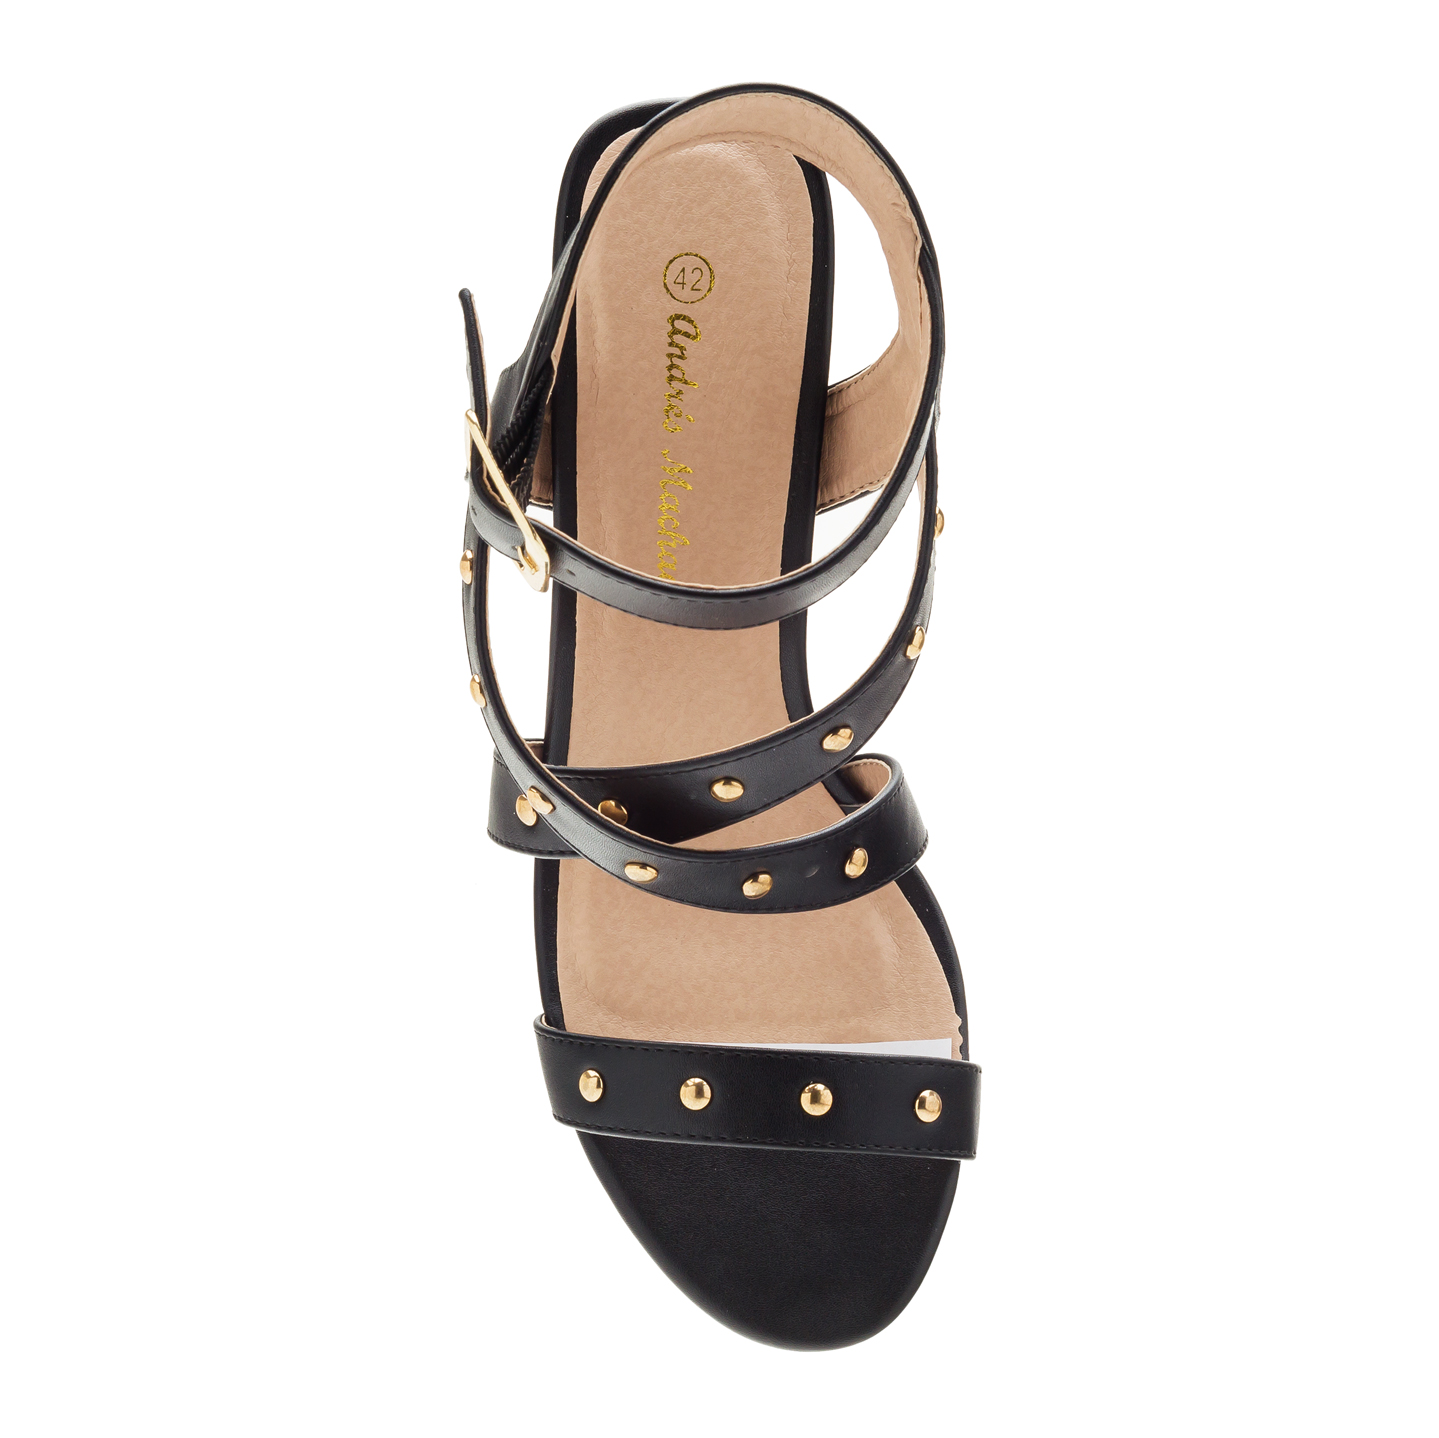 Tack Sandals in Black faux Leather